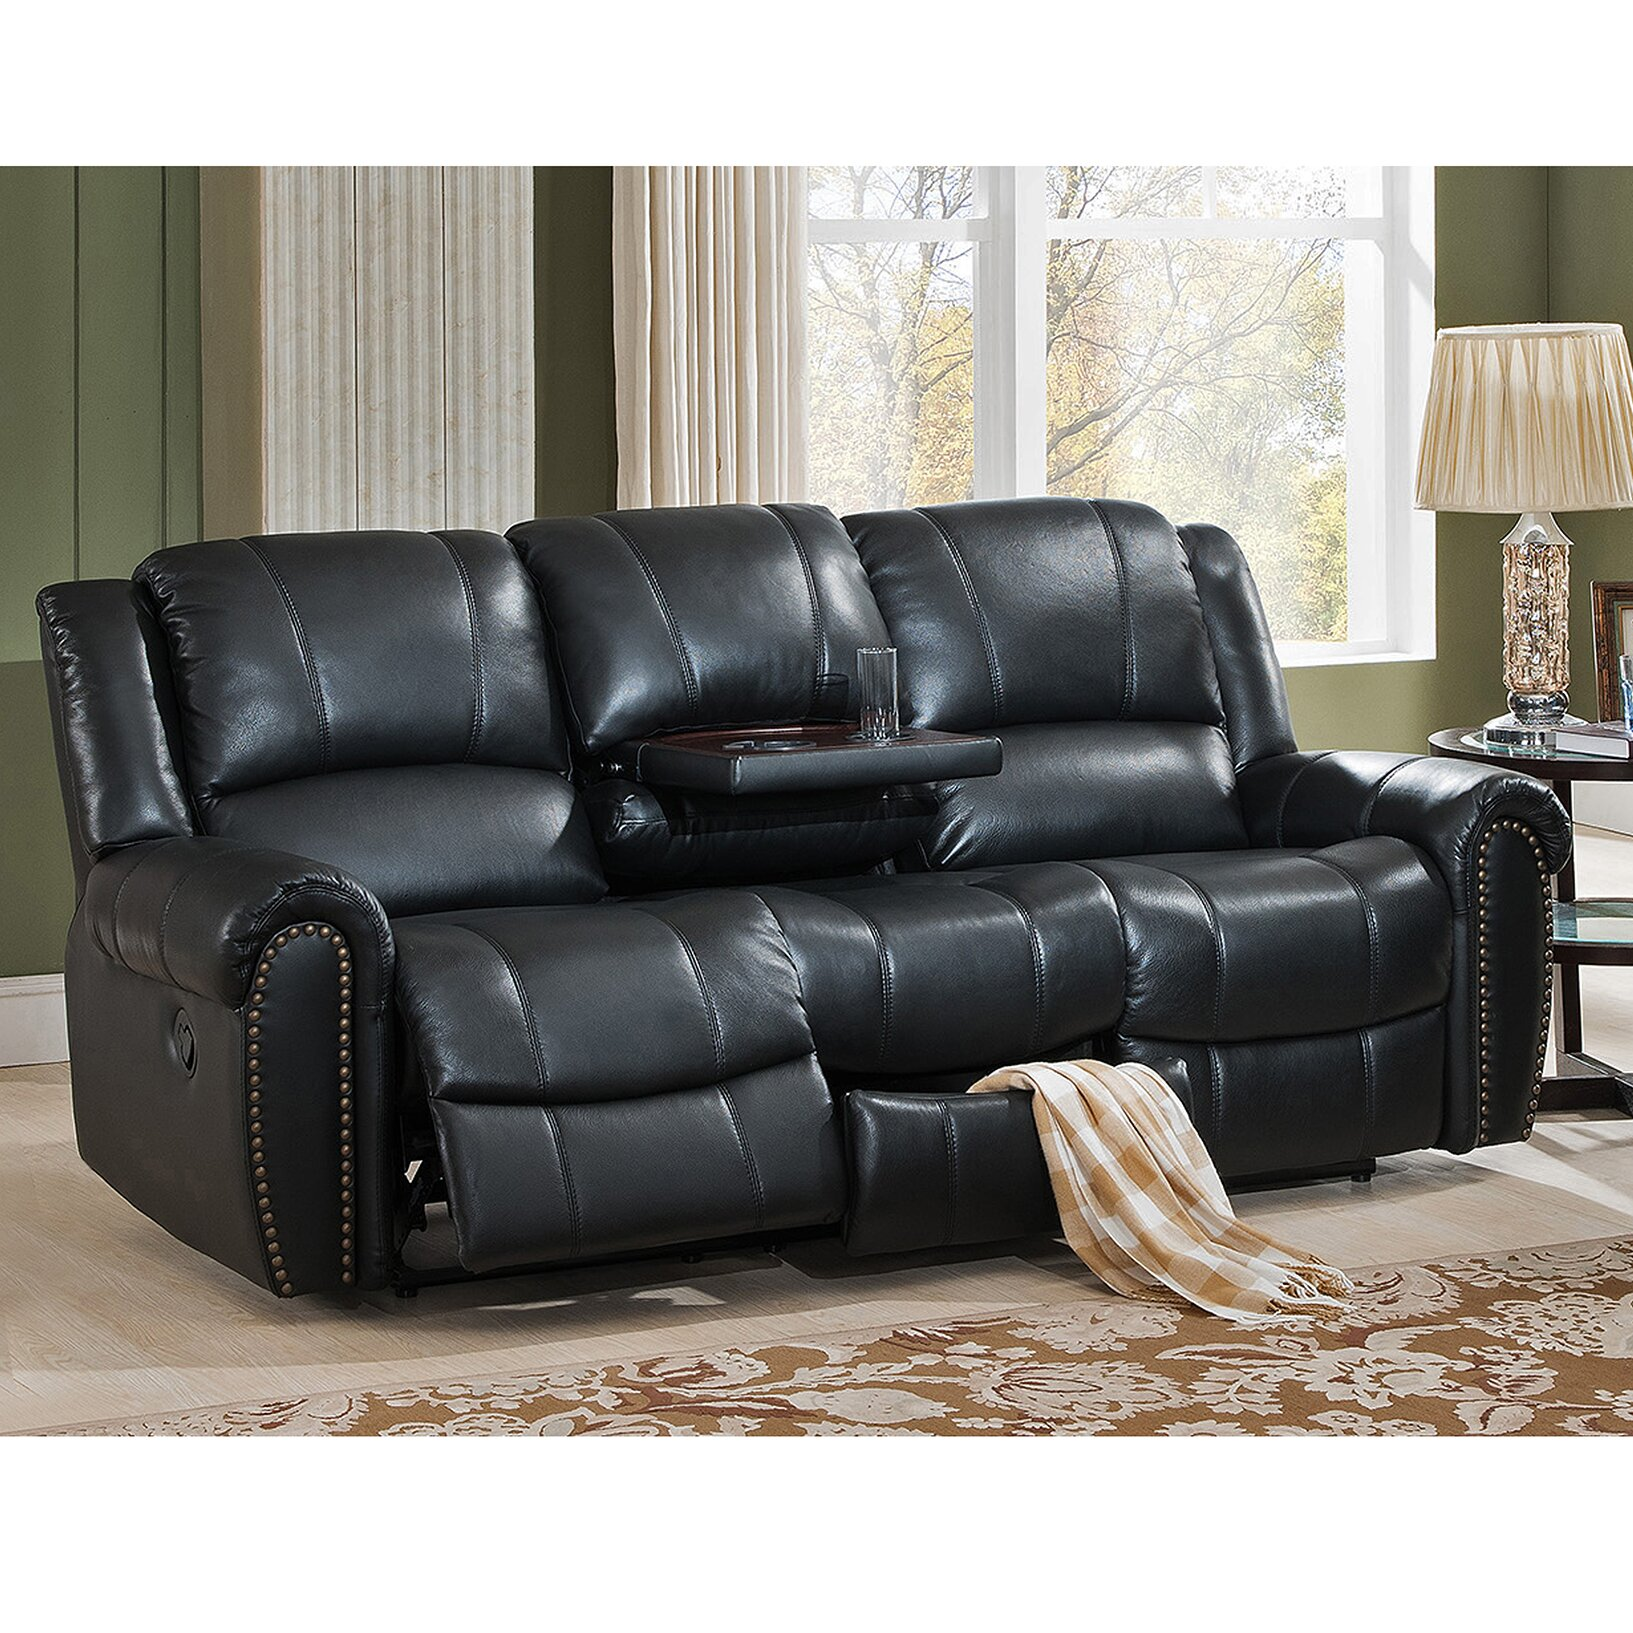 best 3 piece leather living room set ideas - amazing design ideas